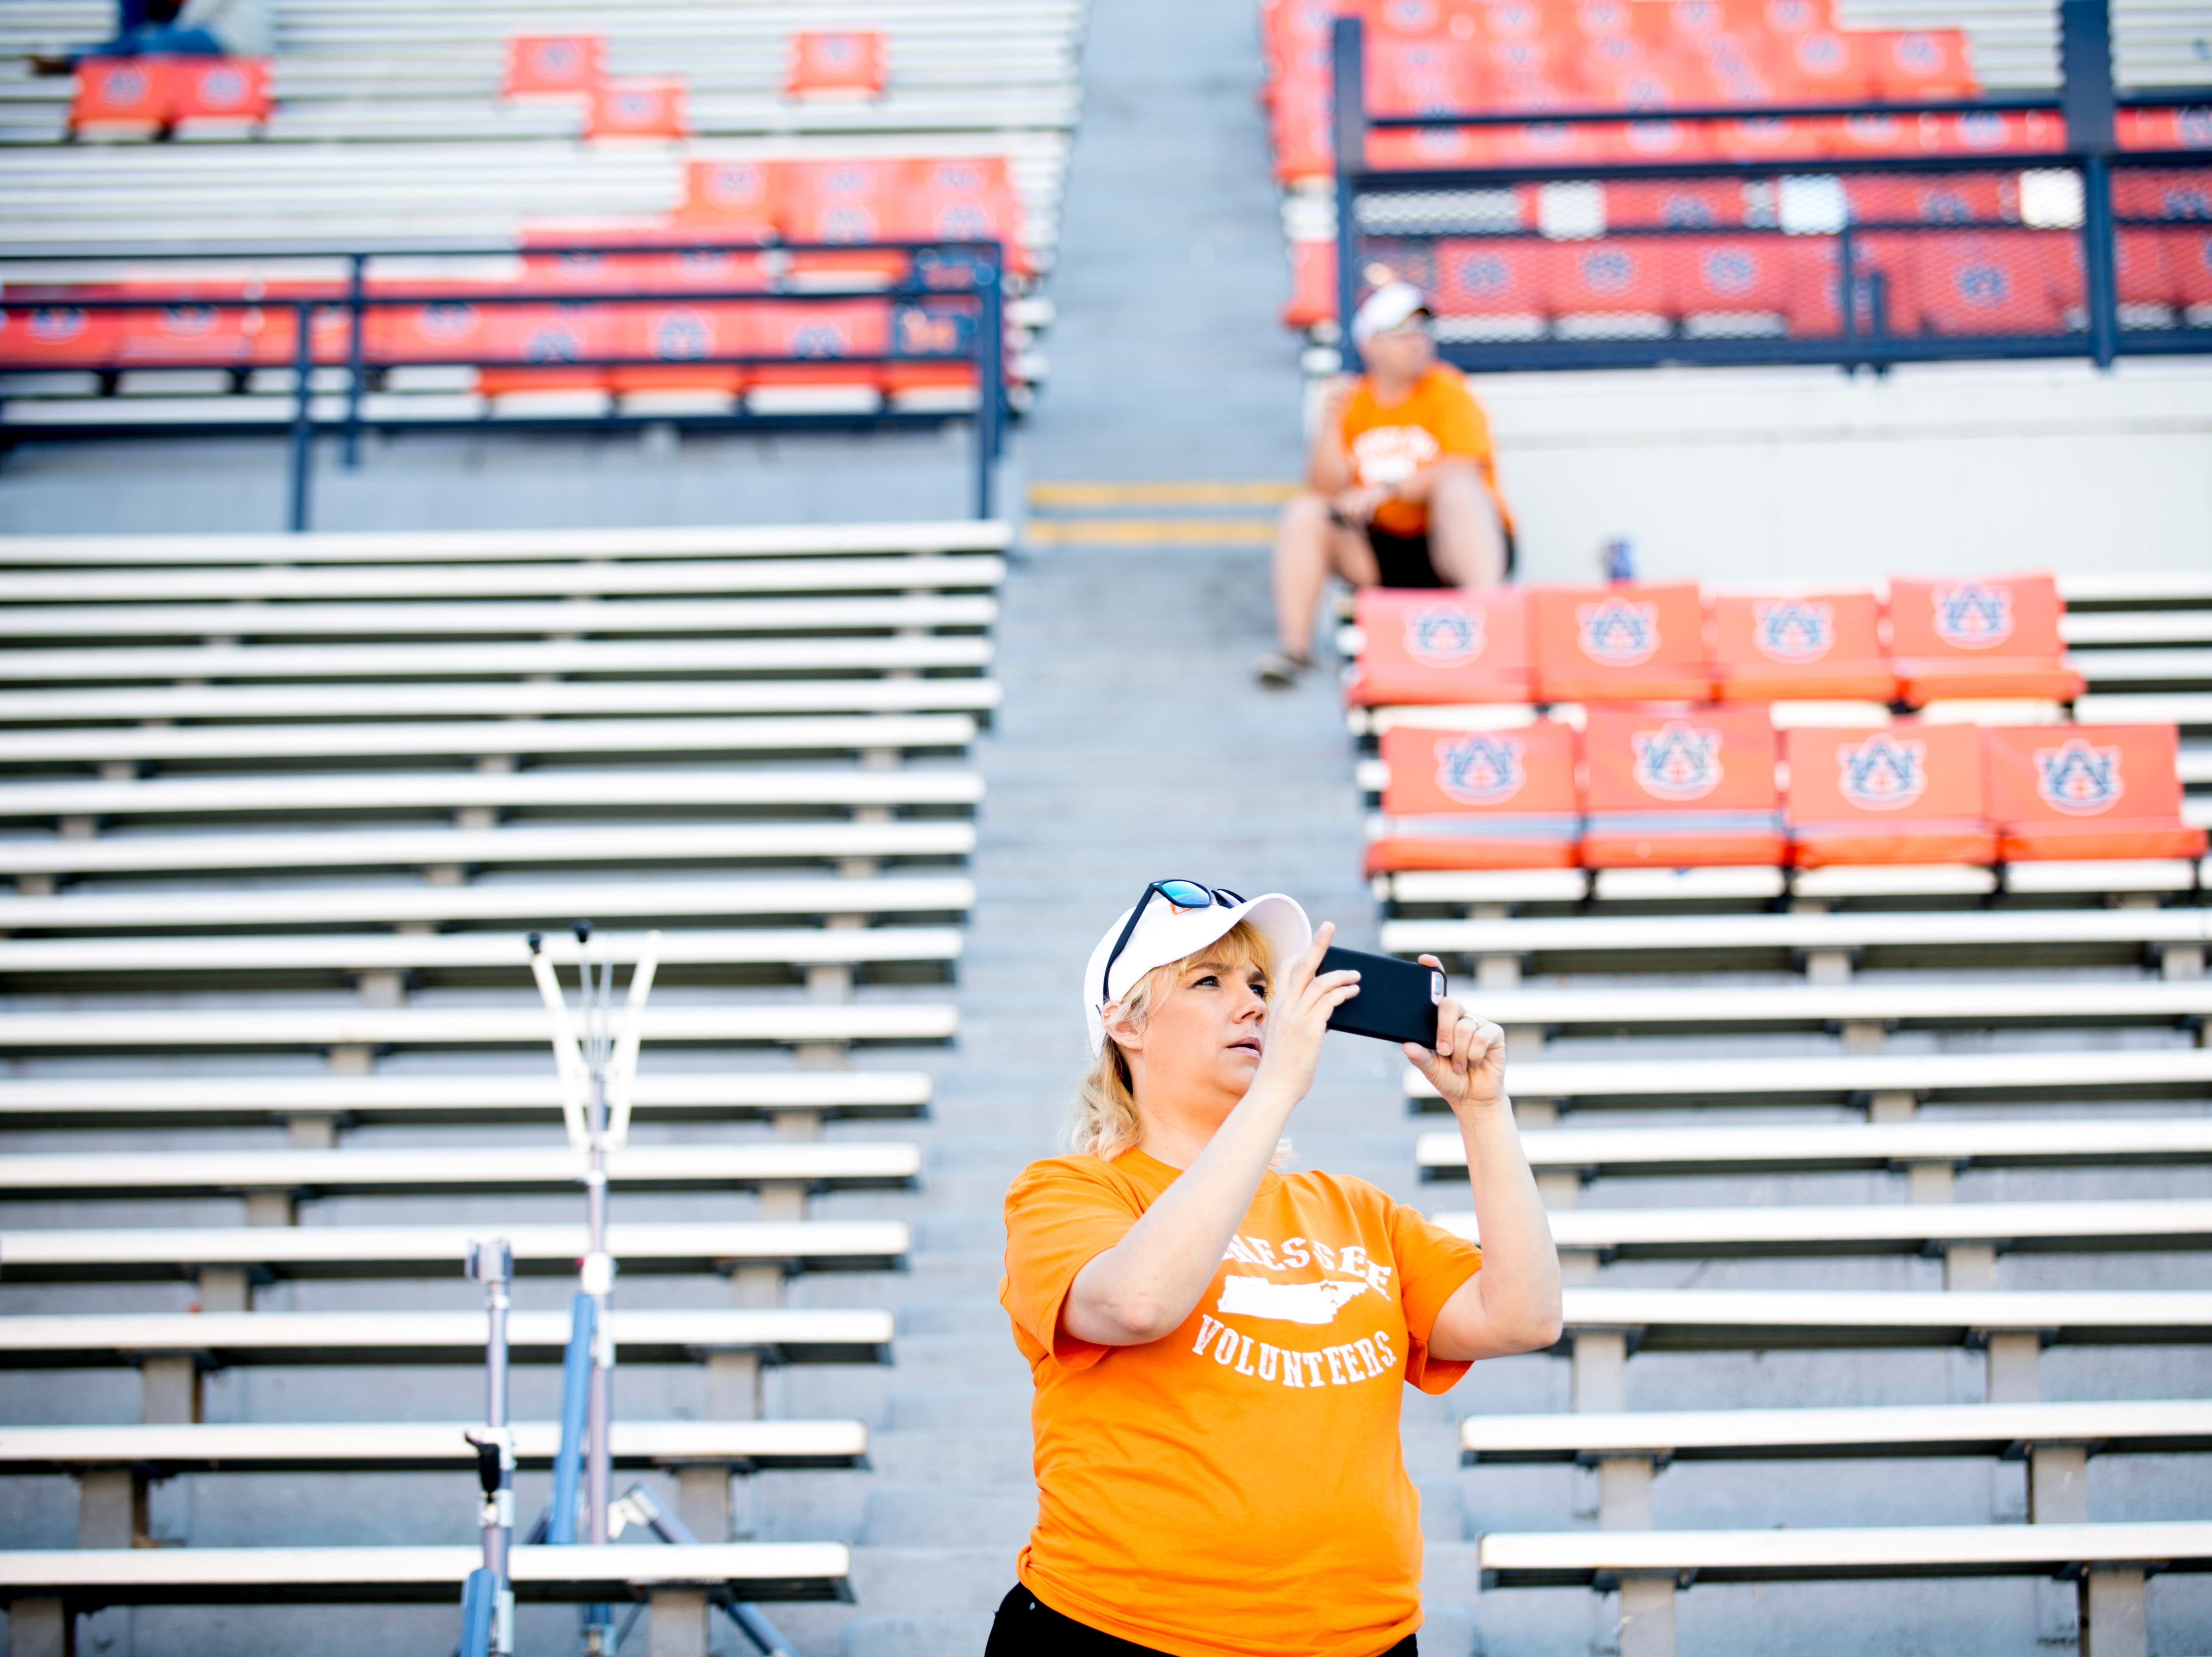 A Vol fan snaps a photo of the stadium during a game between Tennessee and Auburn at Jordan-Hare Stadium in Auburn, Alabama on Saturday, October 13, 2018.